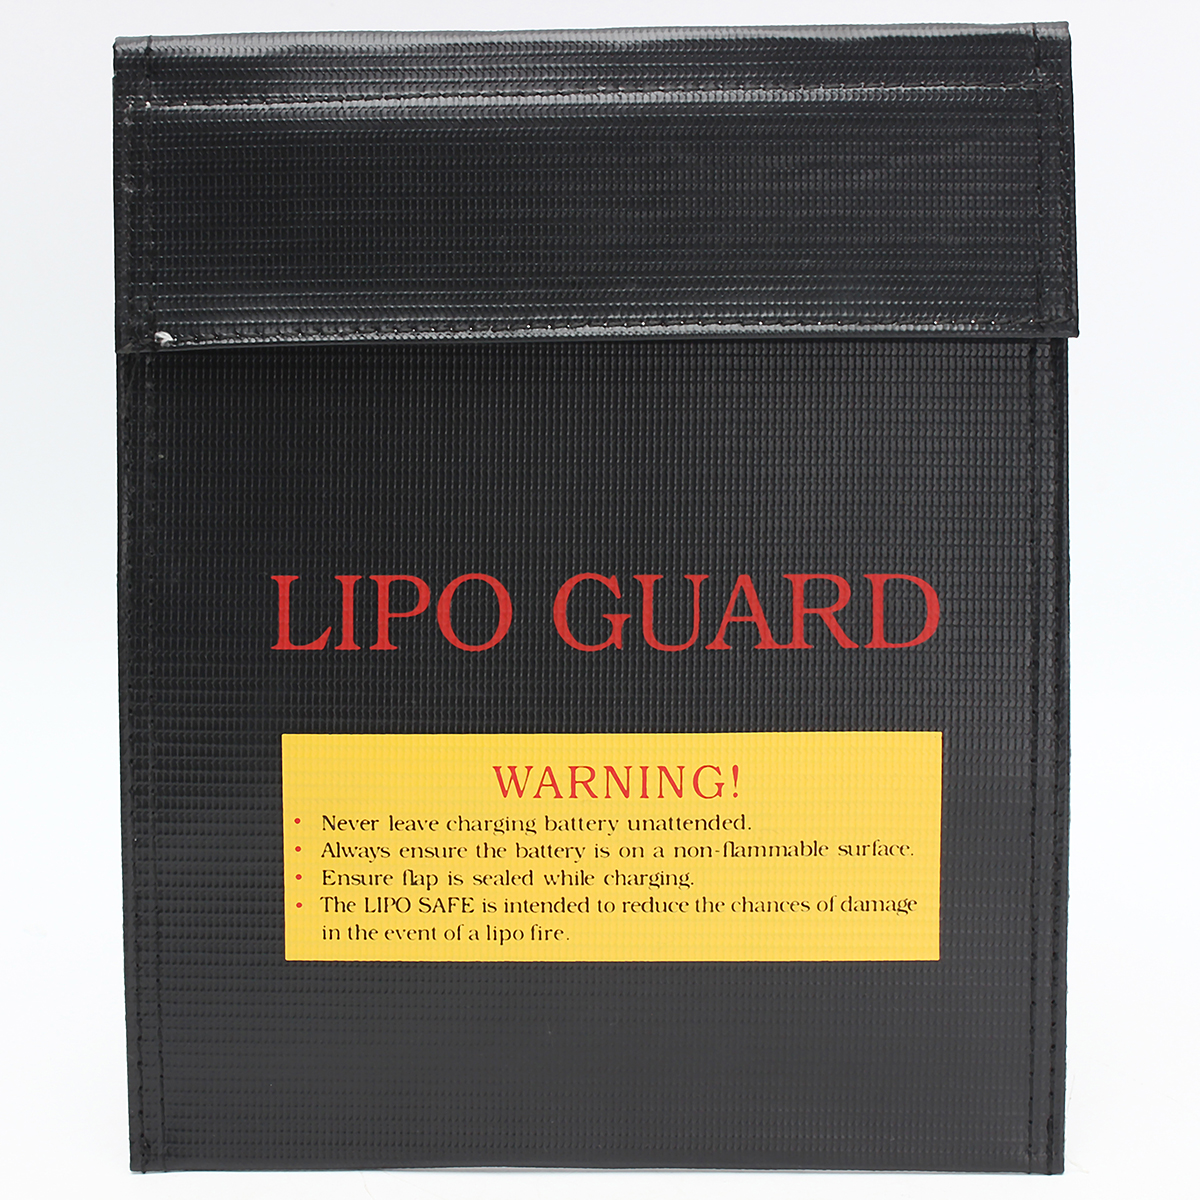 7 inch x 9 inch RC LiPo Battery Guard Charging Explosion Protection Fire Proof Safe Bag Case